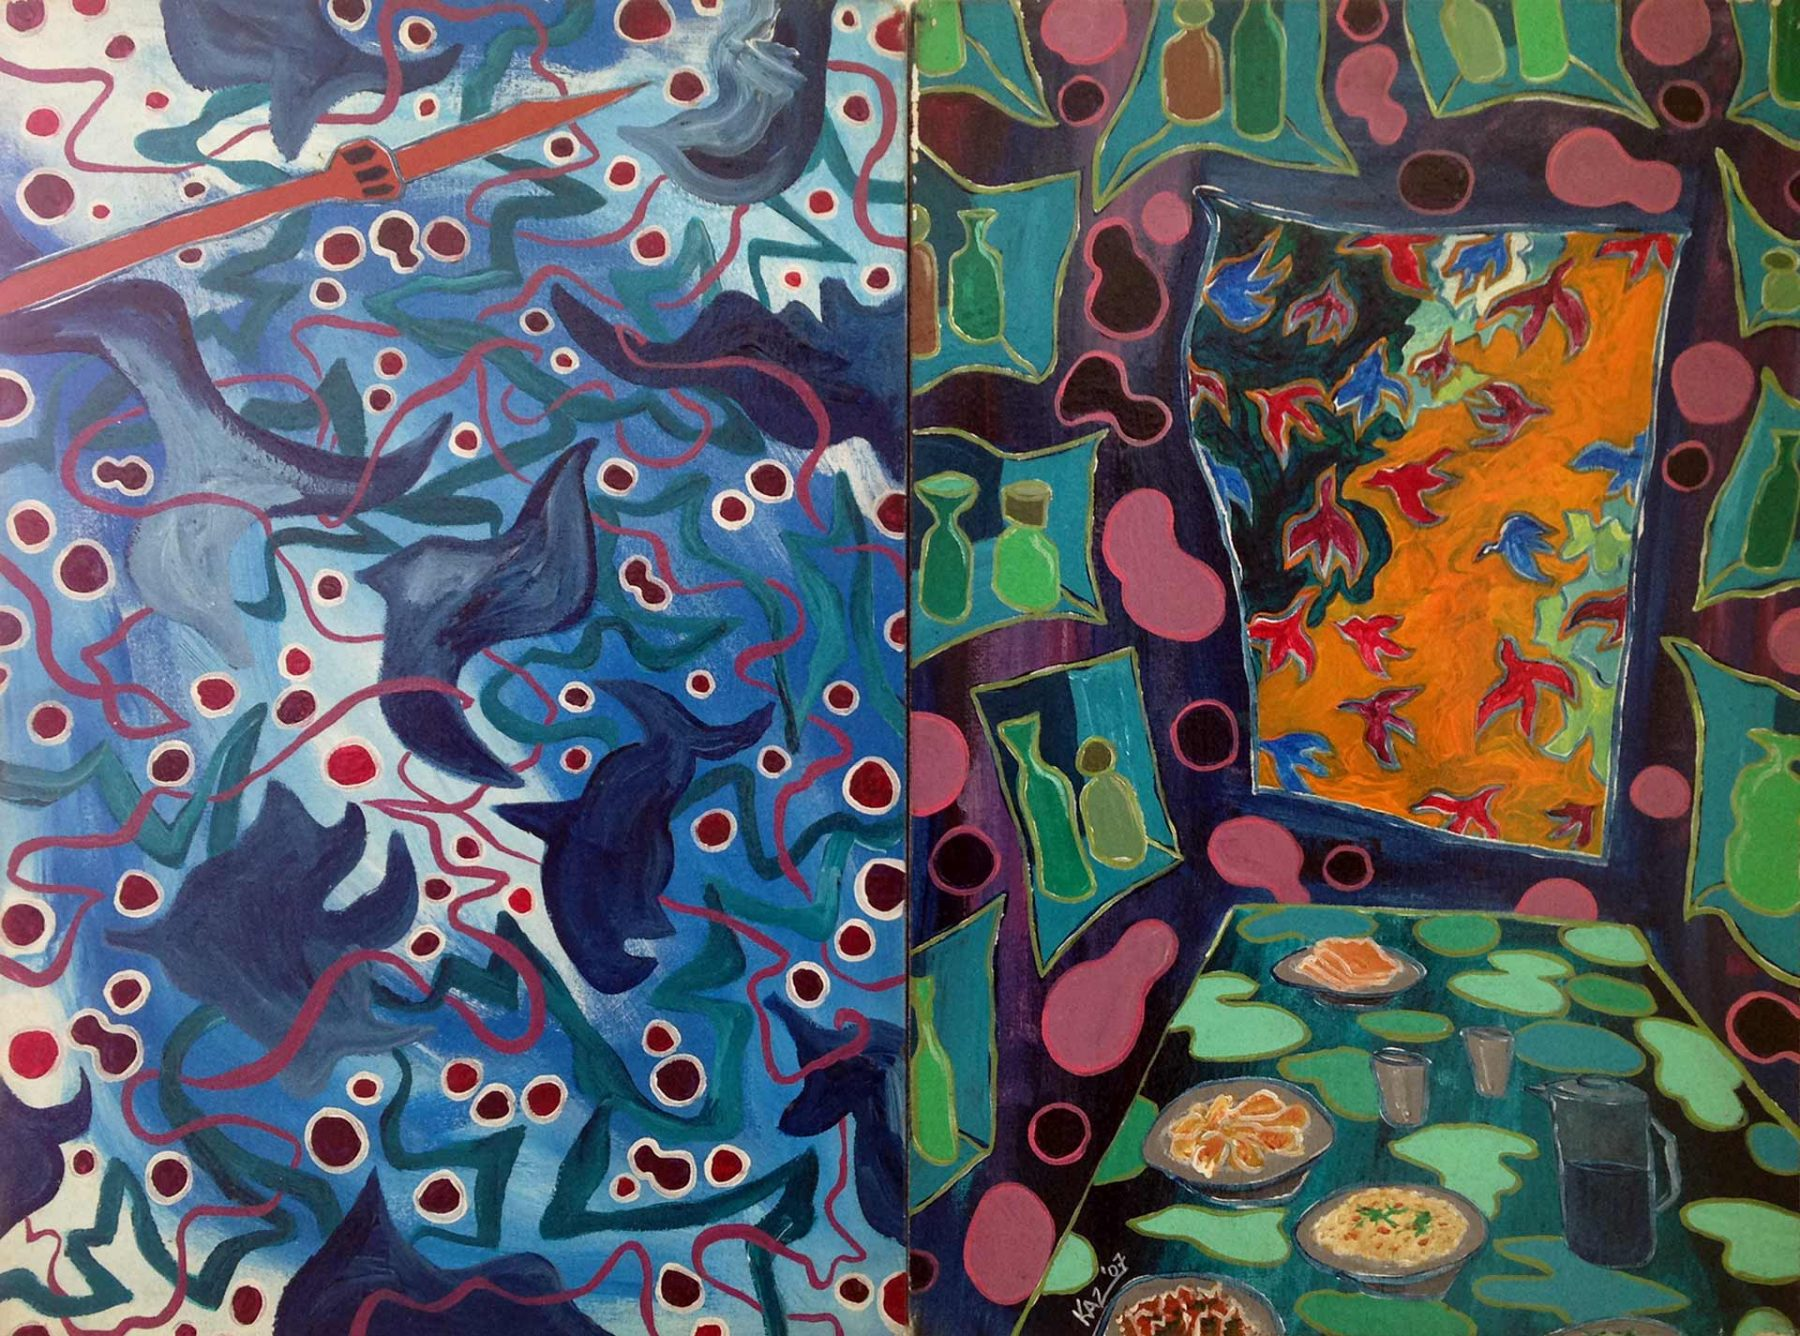 Alchemistic Cafe (2007) acrylic on canvas, 2 panels, 0.47H x 0.62W meters